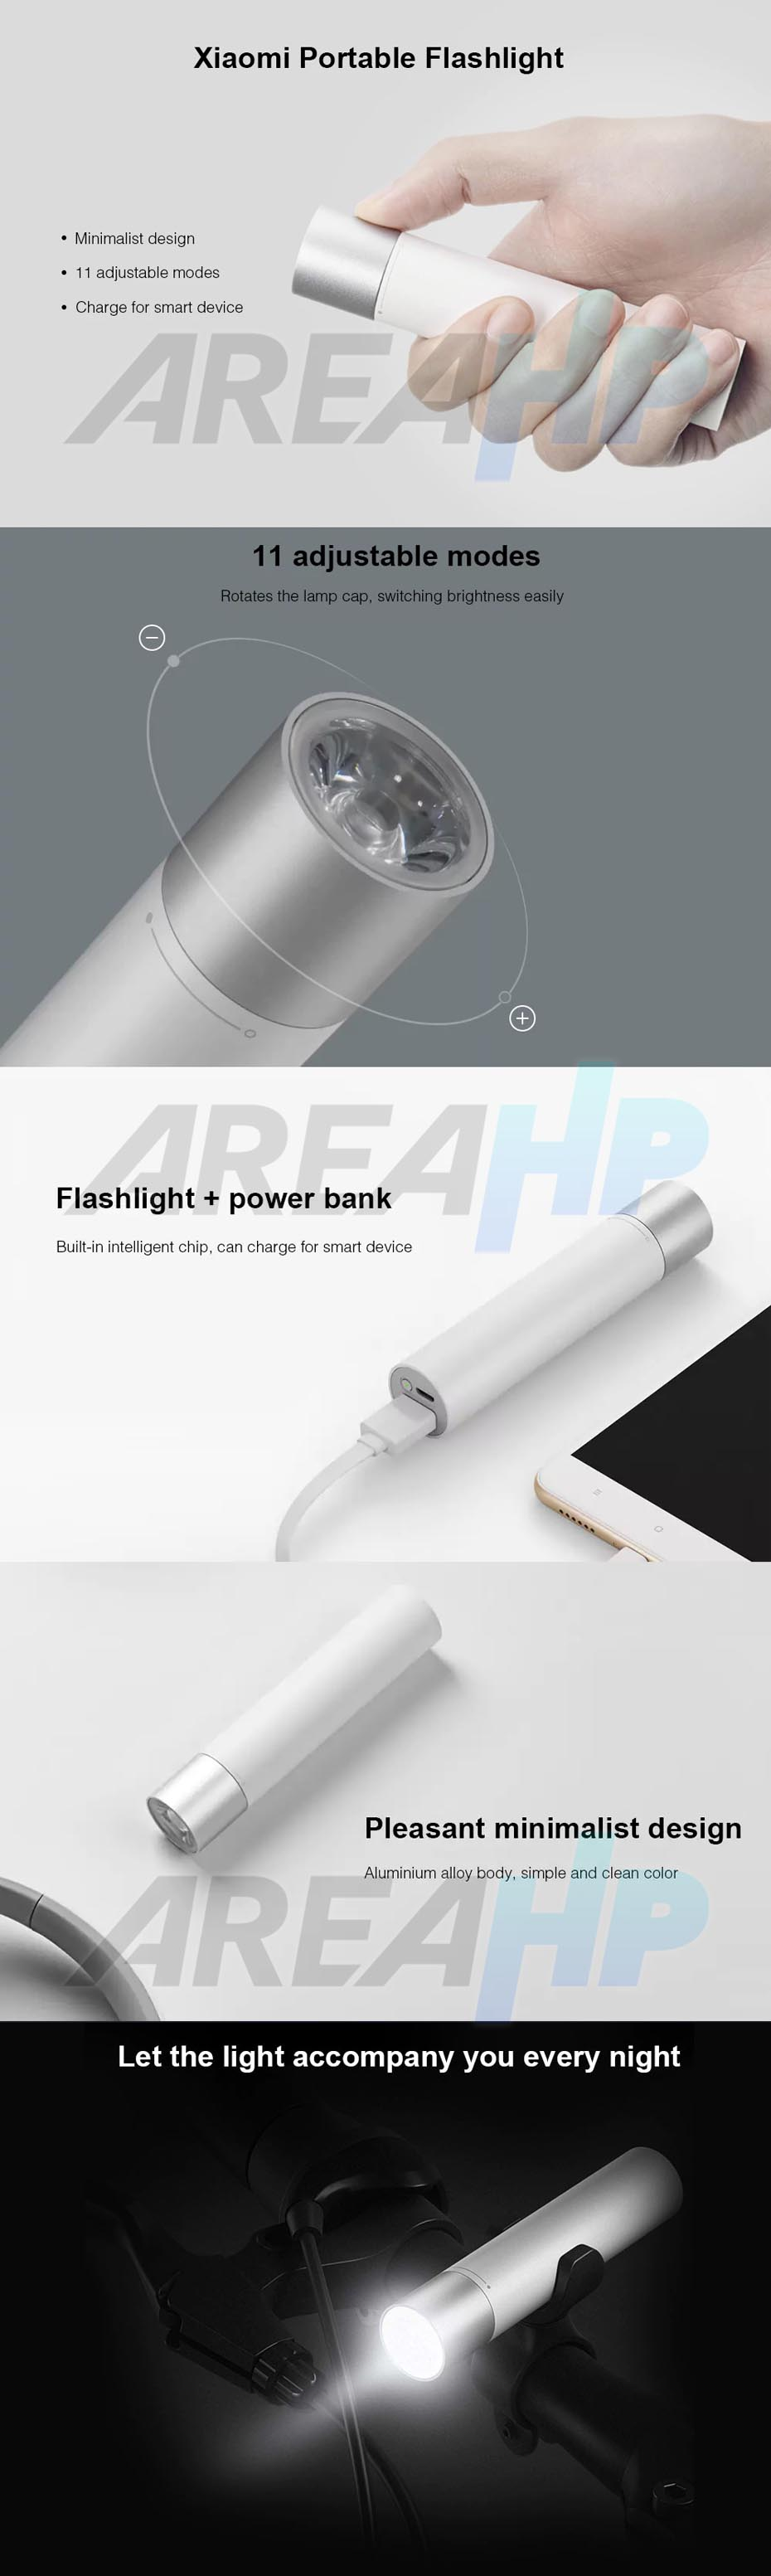 Xiaomi Portable Torch LED Flashlight and Powerbank 3350 mAh Original Overview